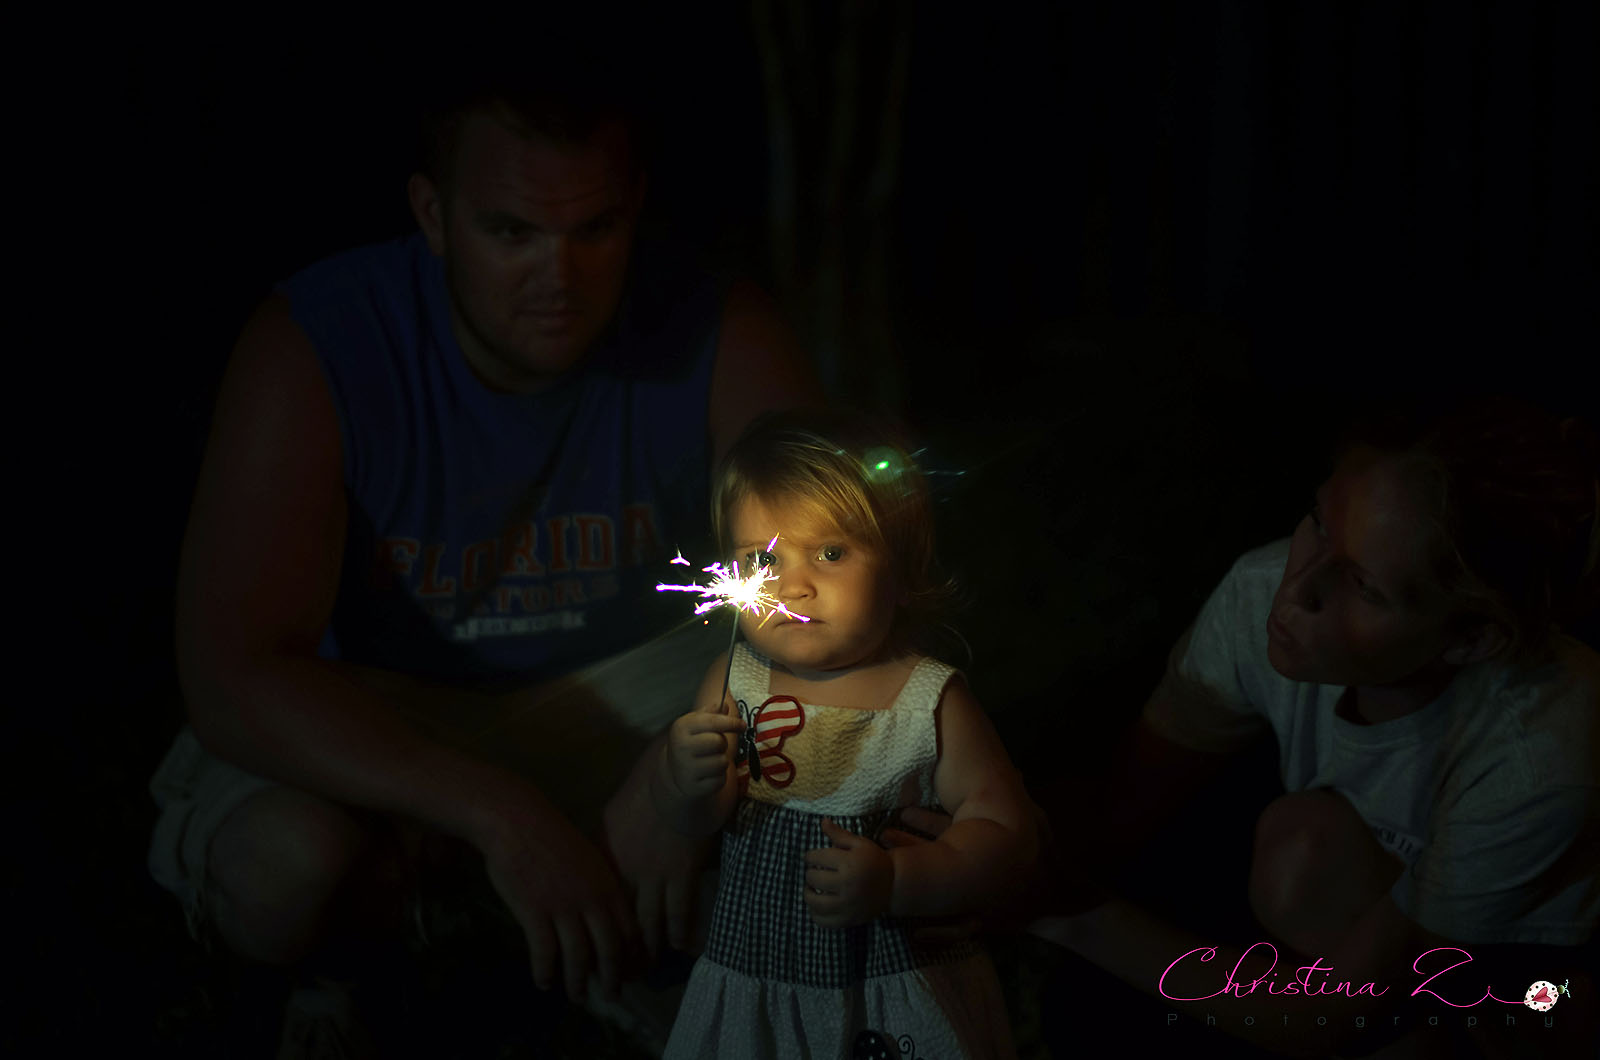 Family 4th of July Photo | Christina Z Photography - Orlando FL Photographer